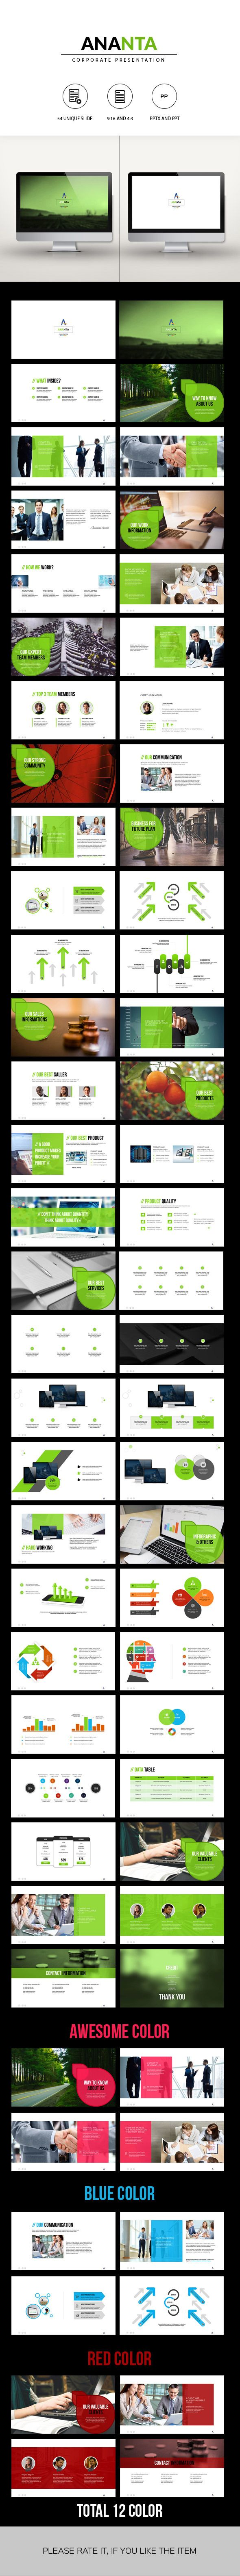 ANANTA | Corporate Powerpoint Template #design Download: http://graphicriver.net/item/ananta-corporate-powerpoint-template/11557083?ref=ksioks